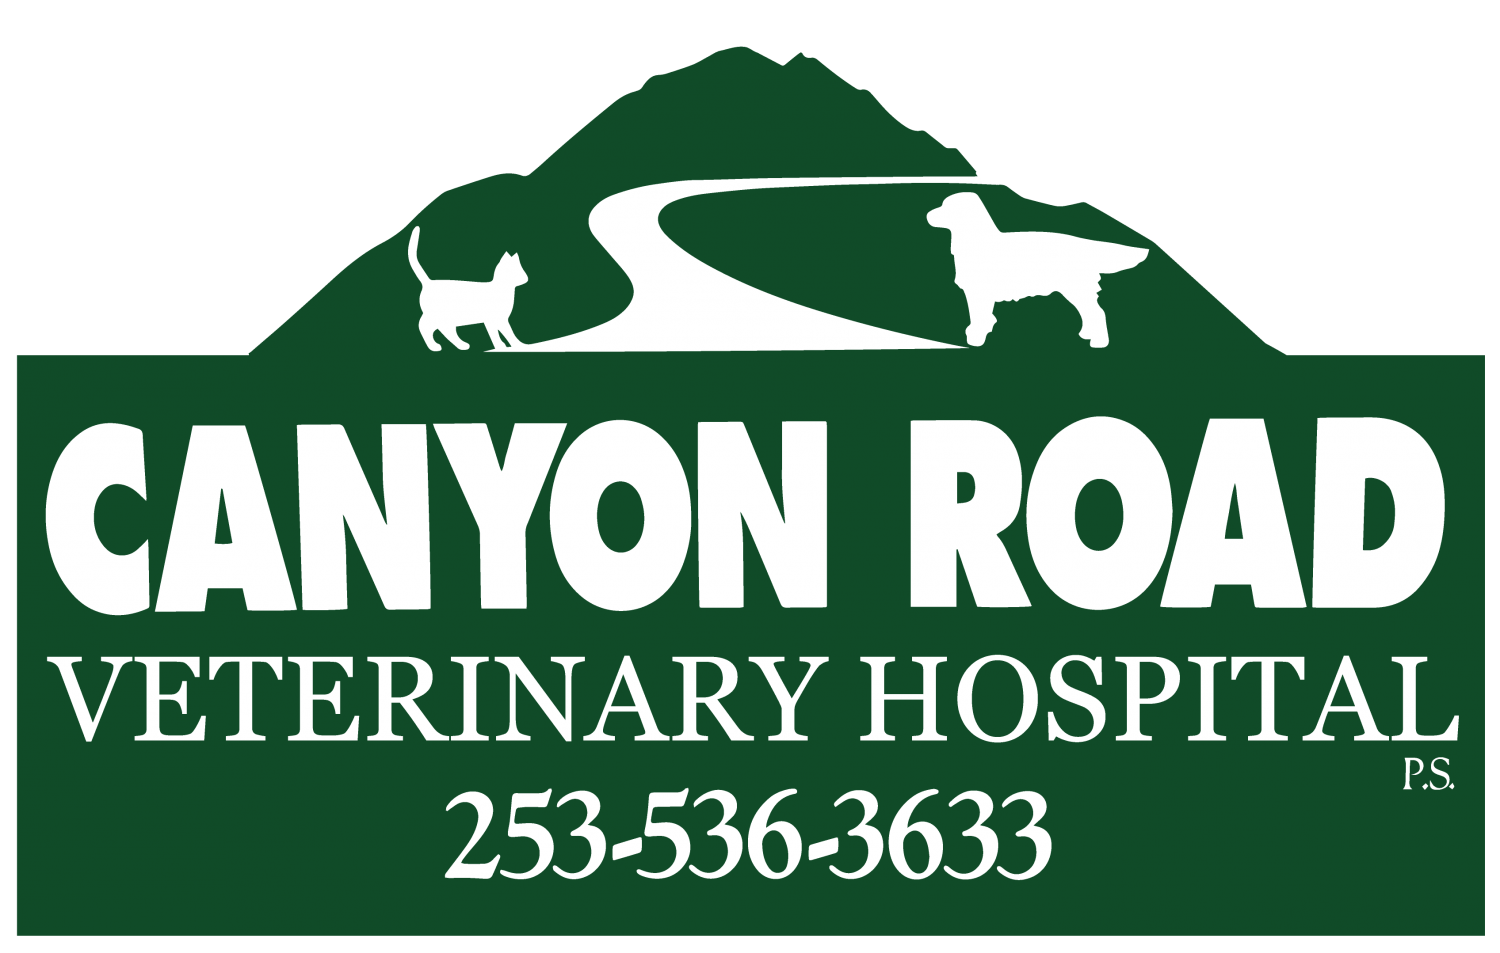 Canyon Road Veterinary Hospital